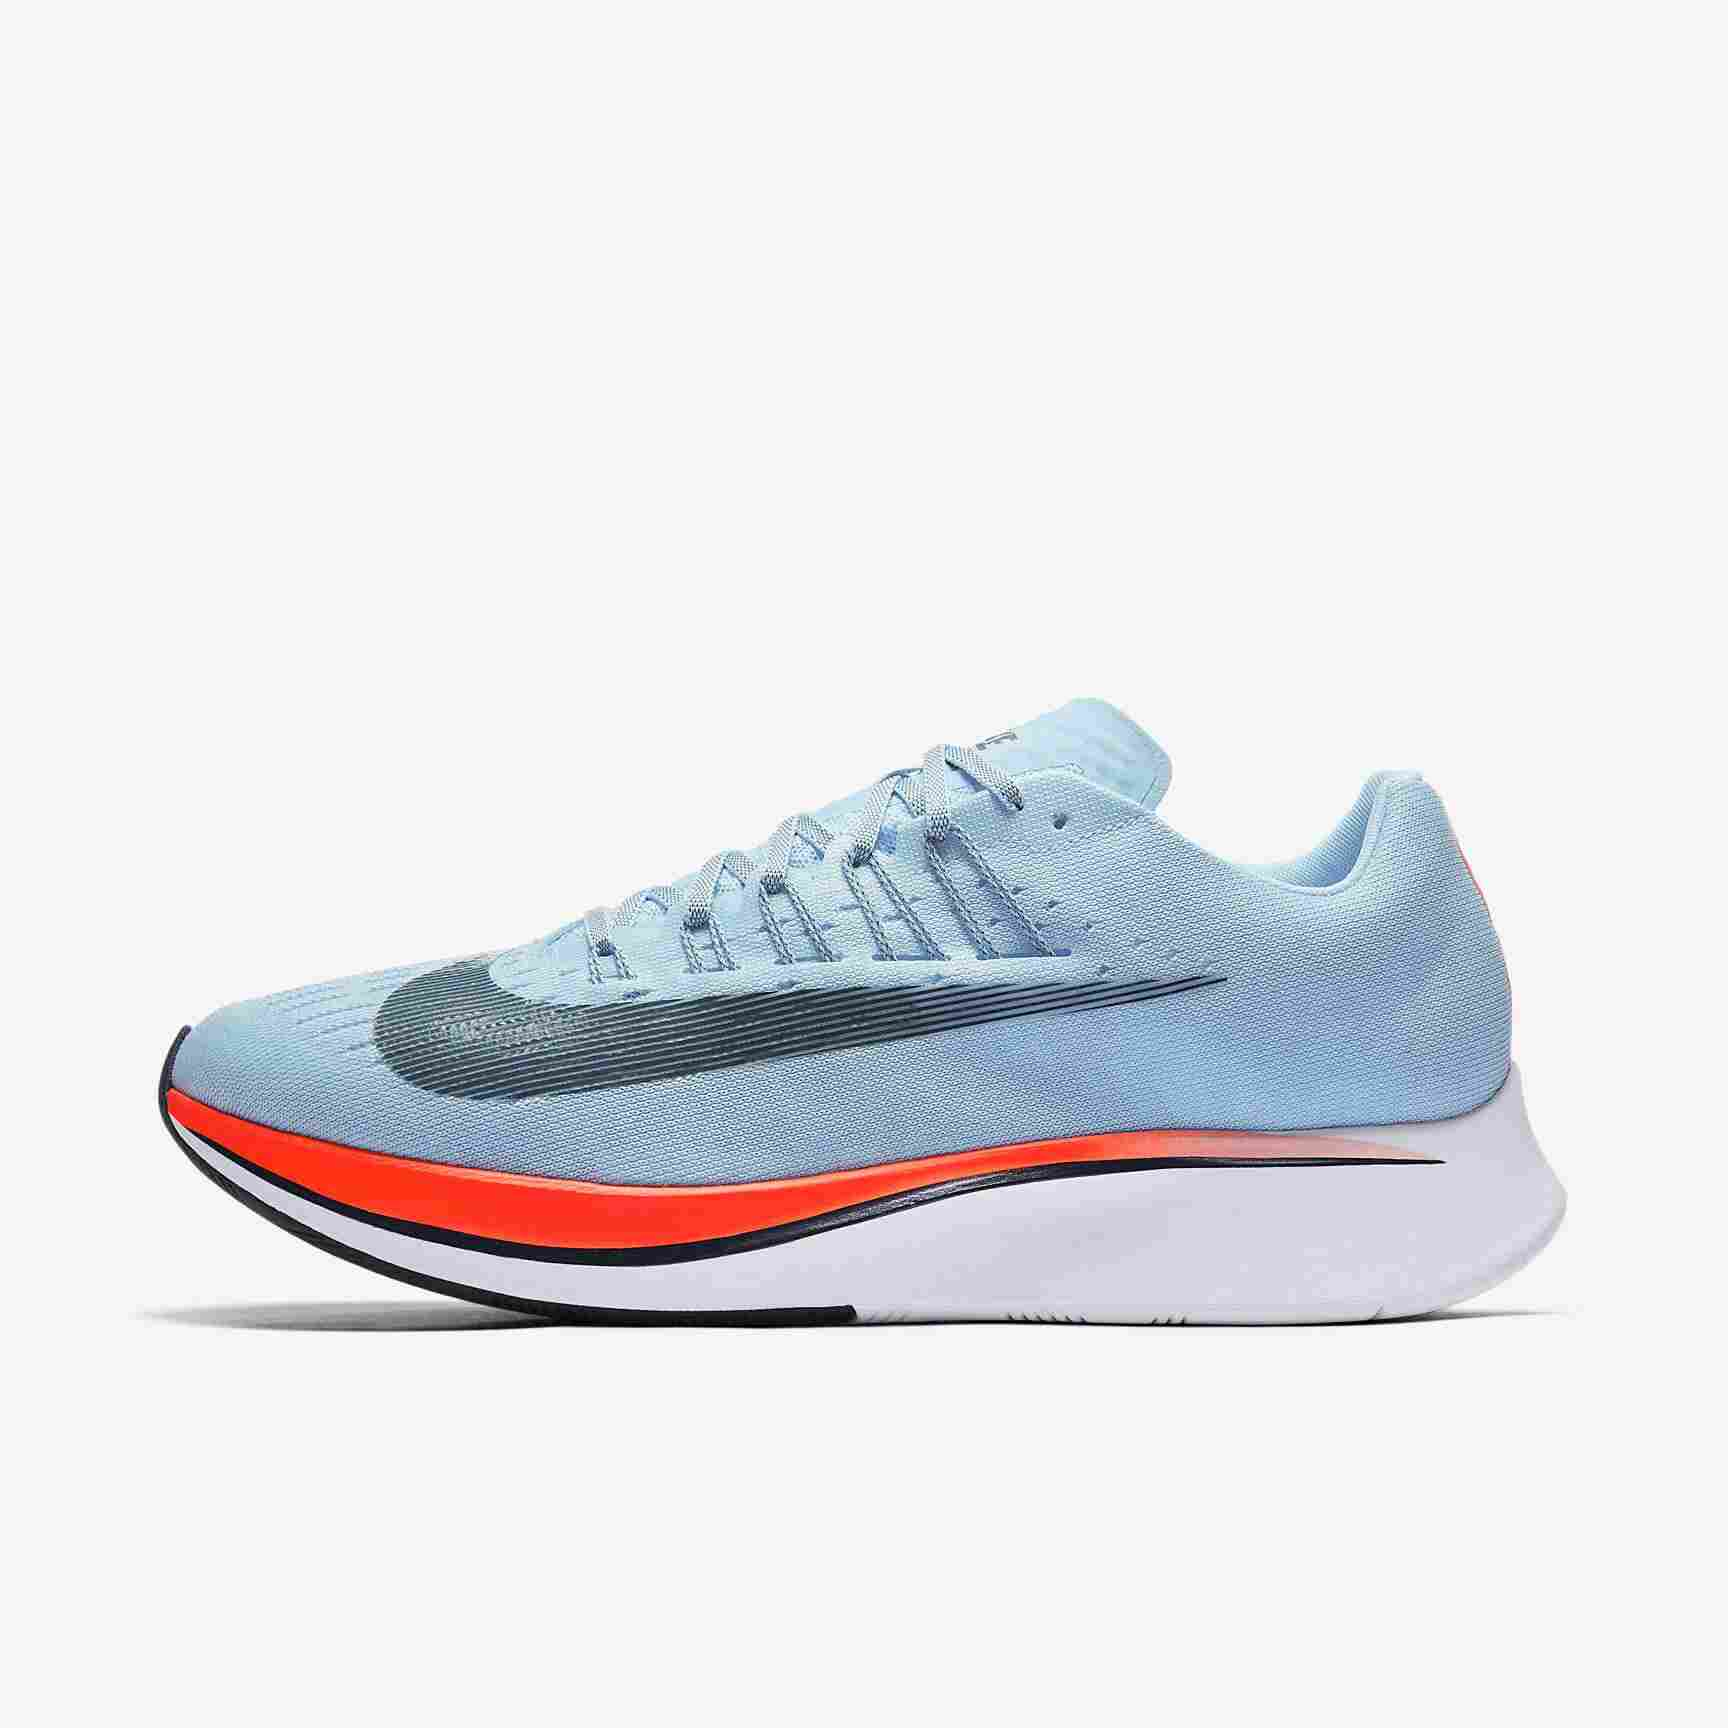 6. Zoom Fly